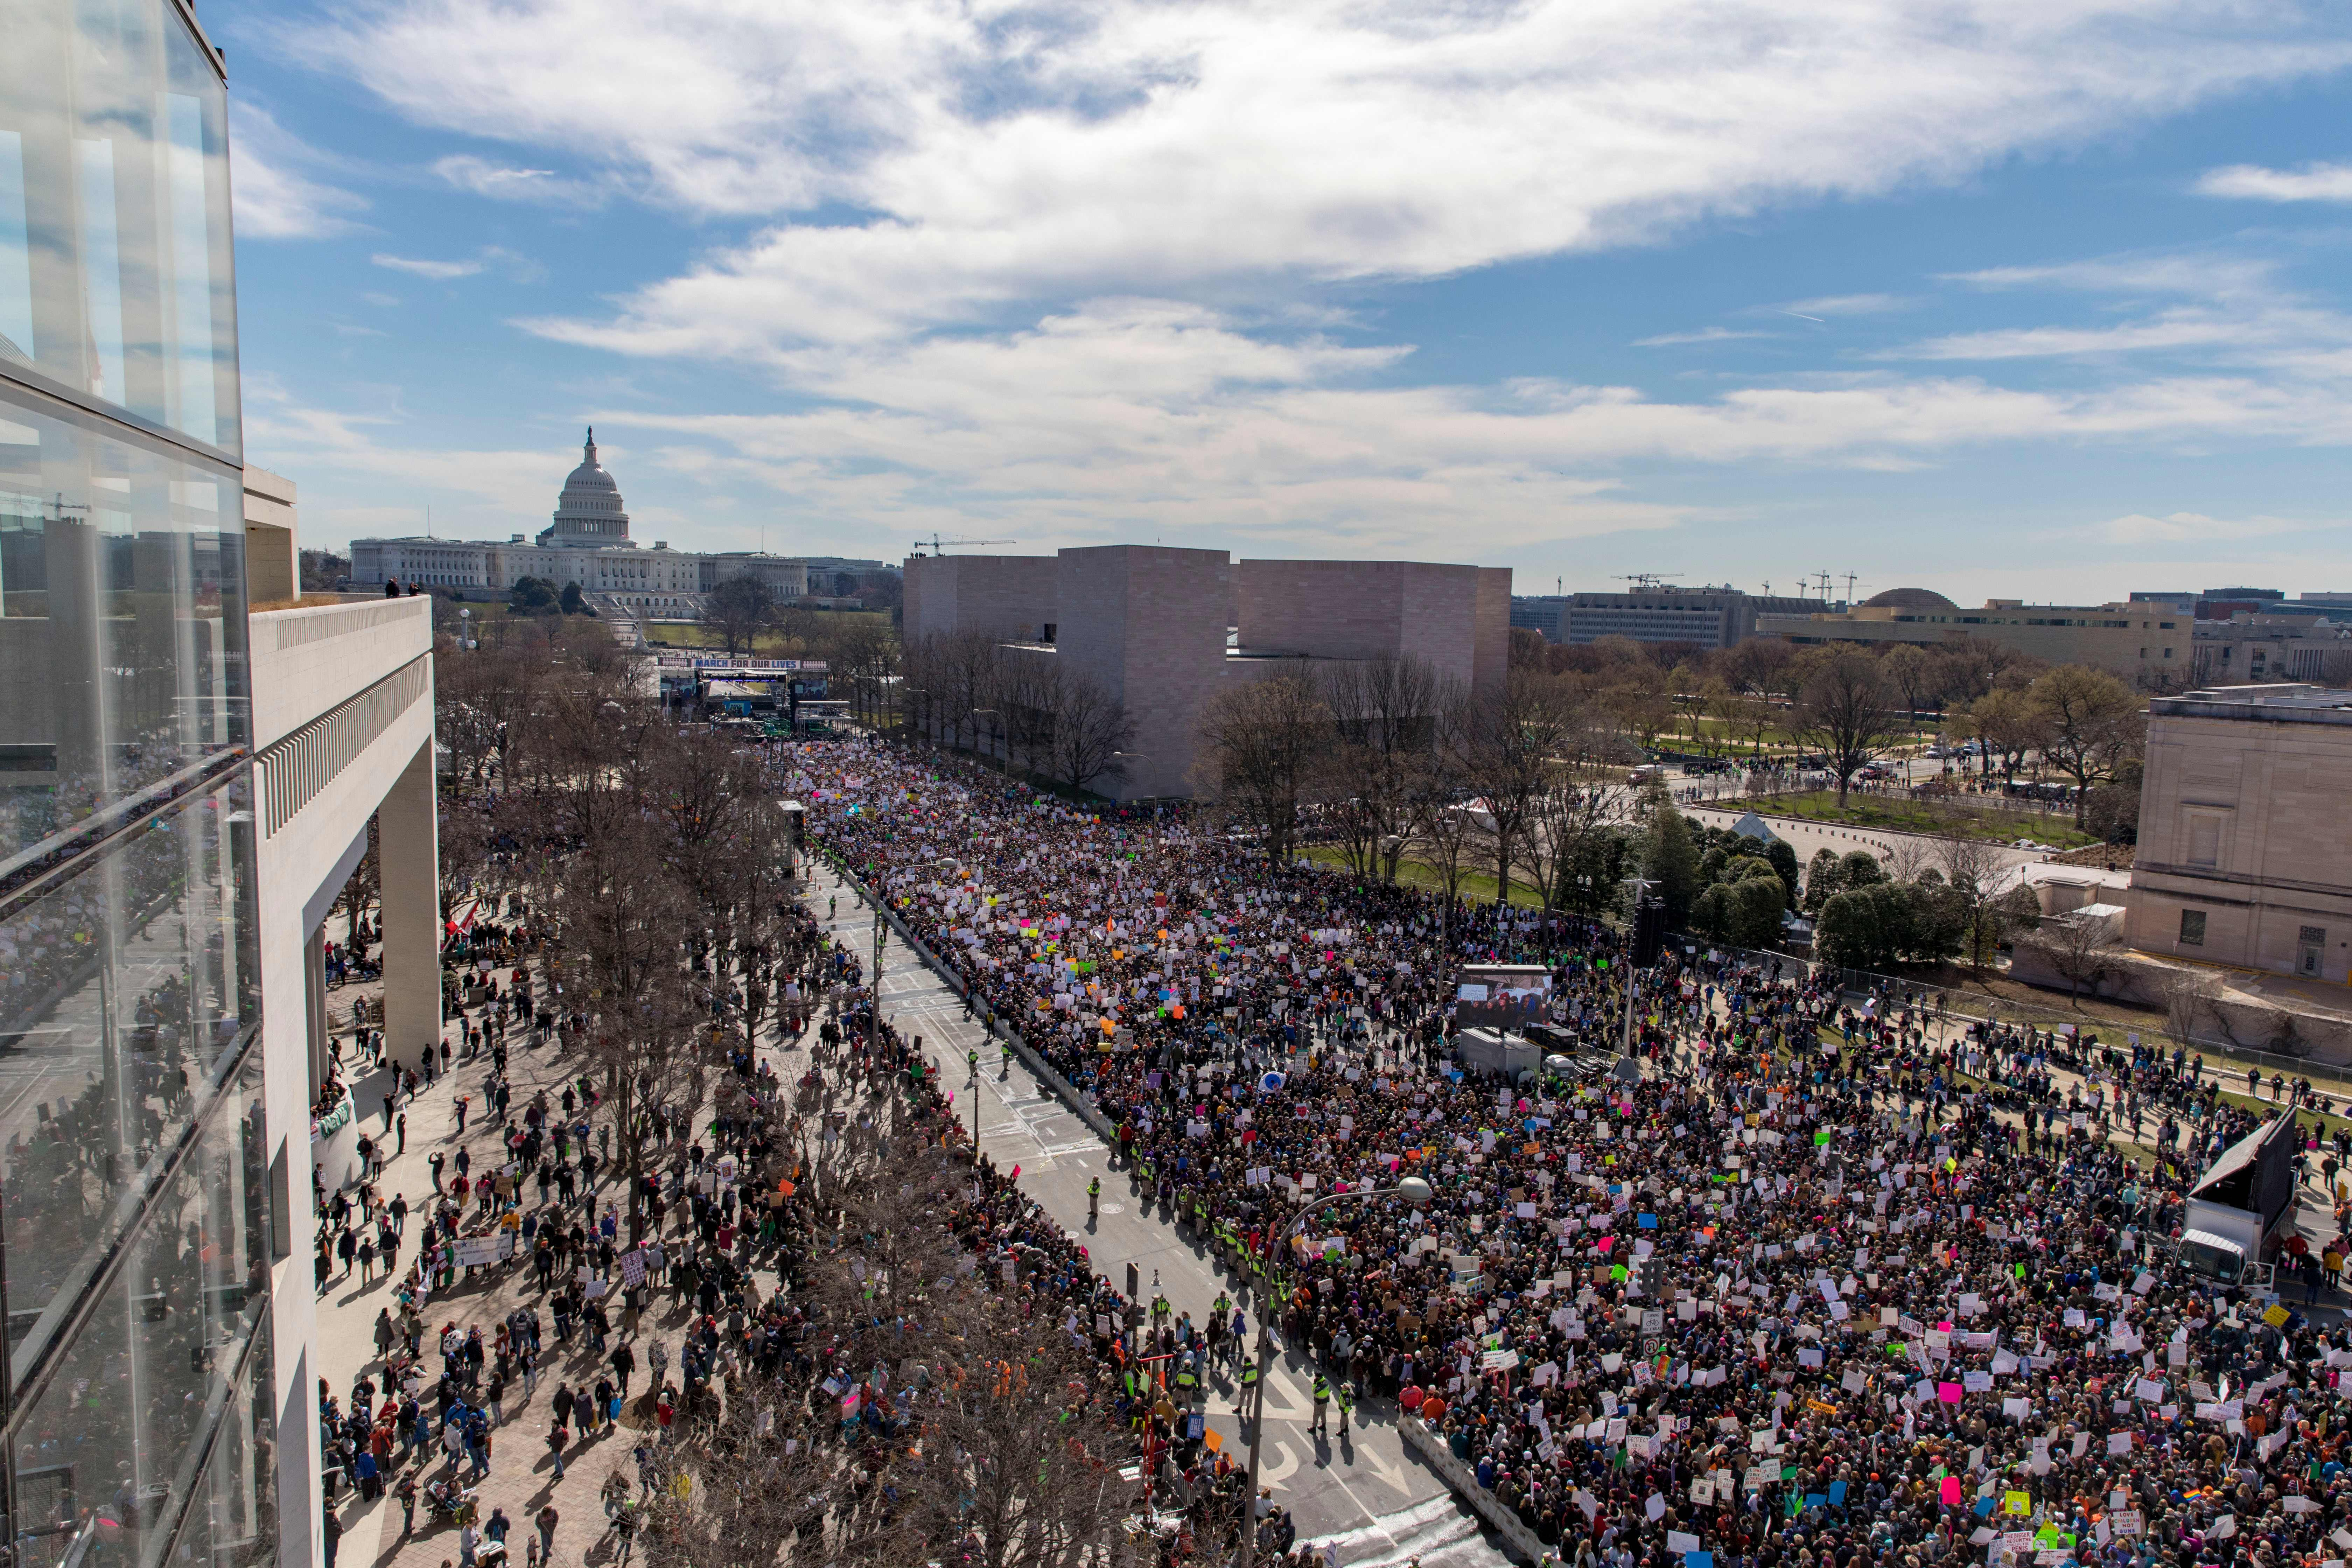 <div class='meta'><div class='origin-logo' data-origin='none'></div><span class='caption-text' data-credit='Alex Edelman/AFP/Getty Images'>The crowd at the March for Our Lives Rally as seen from the roof of the Newseum in Washington, DC on March 24, 2018.</span></div>